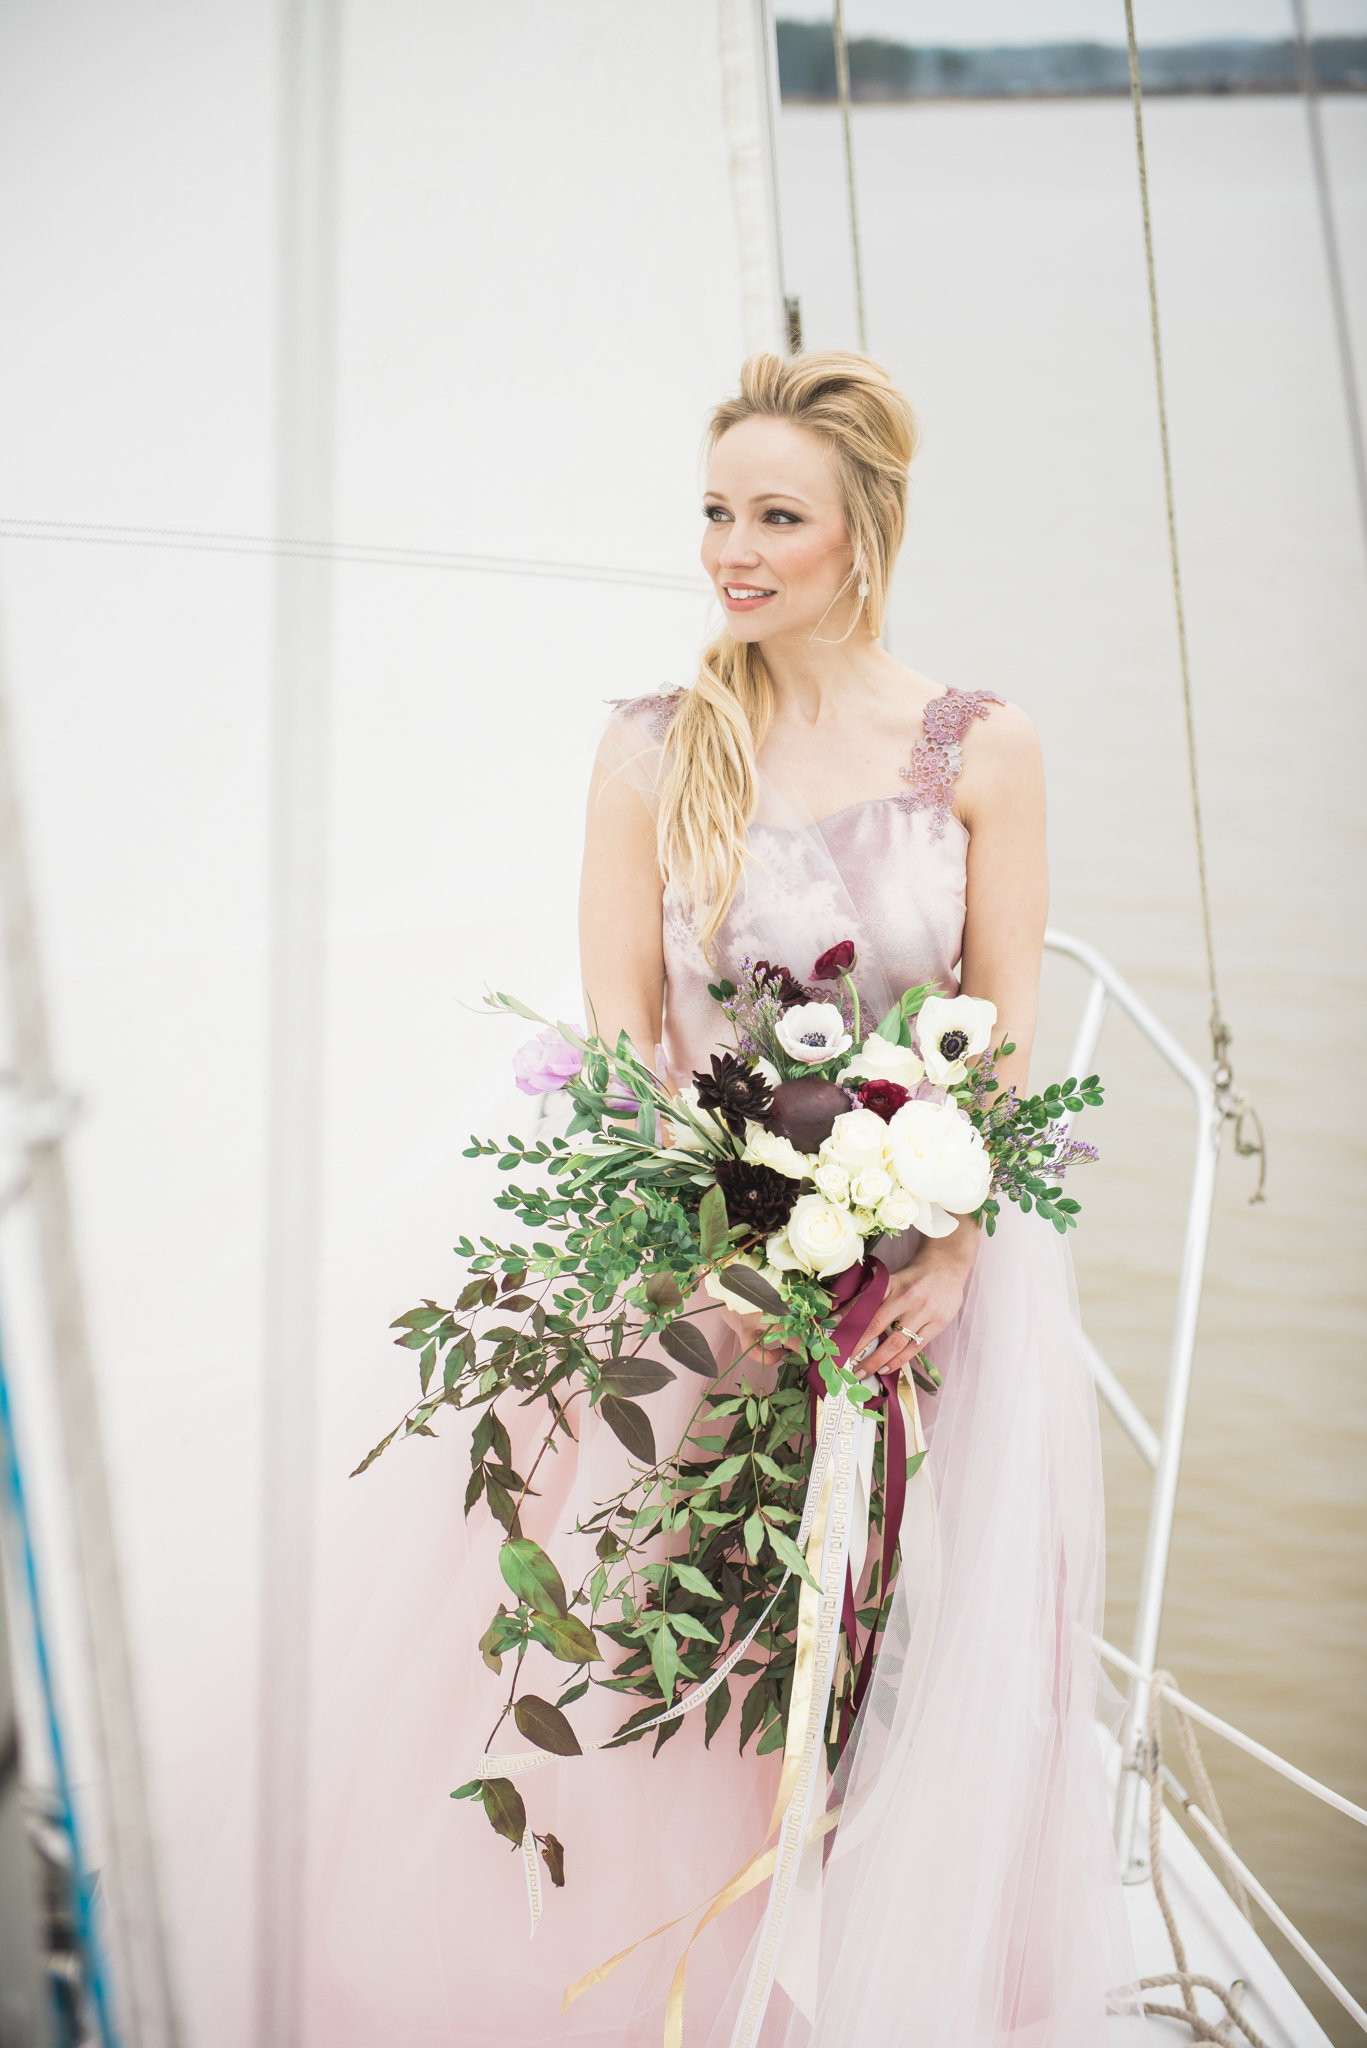 Handley Breaux Designs Styled Photo Shoot | Bromberg's Jewelry | August Willows | Eric & Jamie Photography